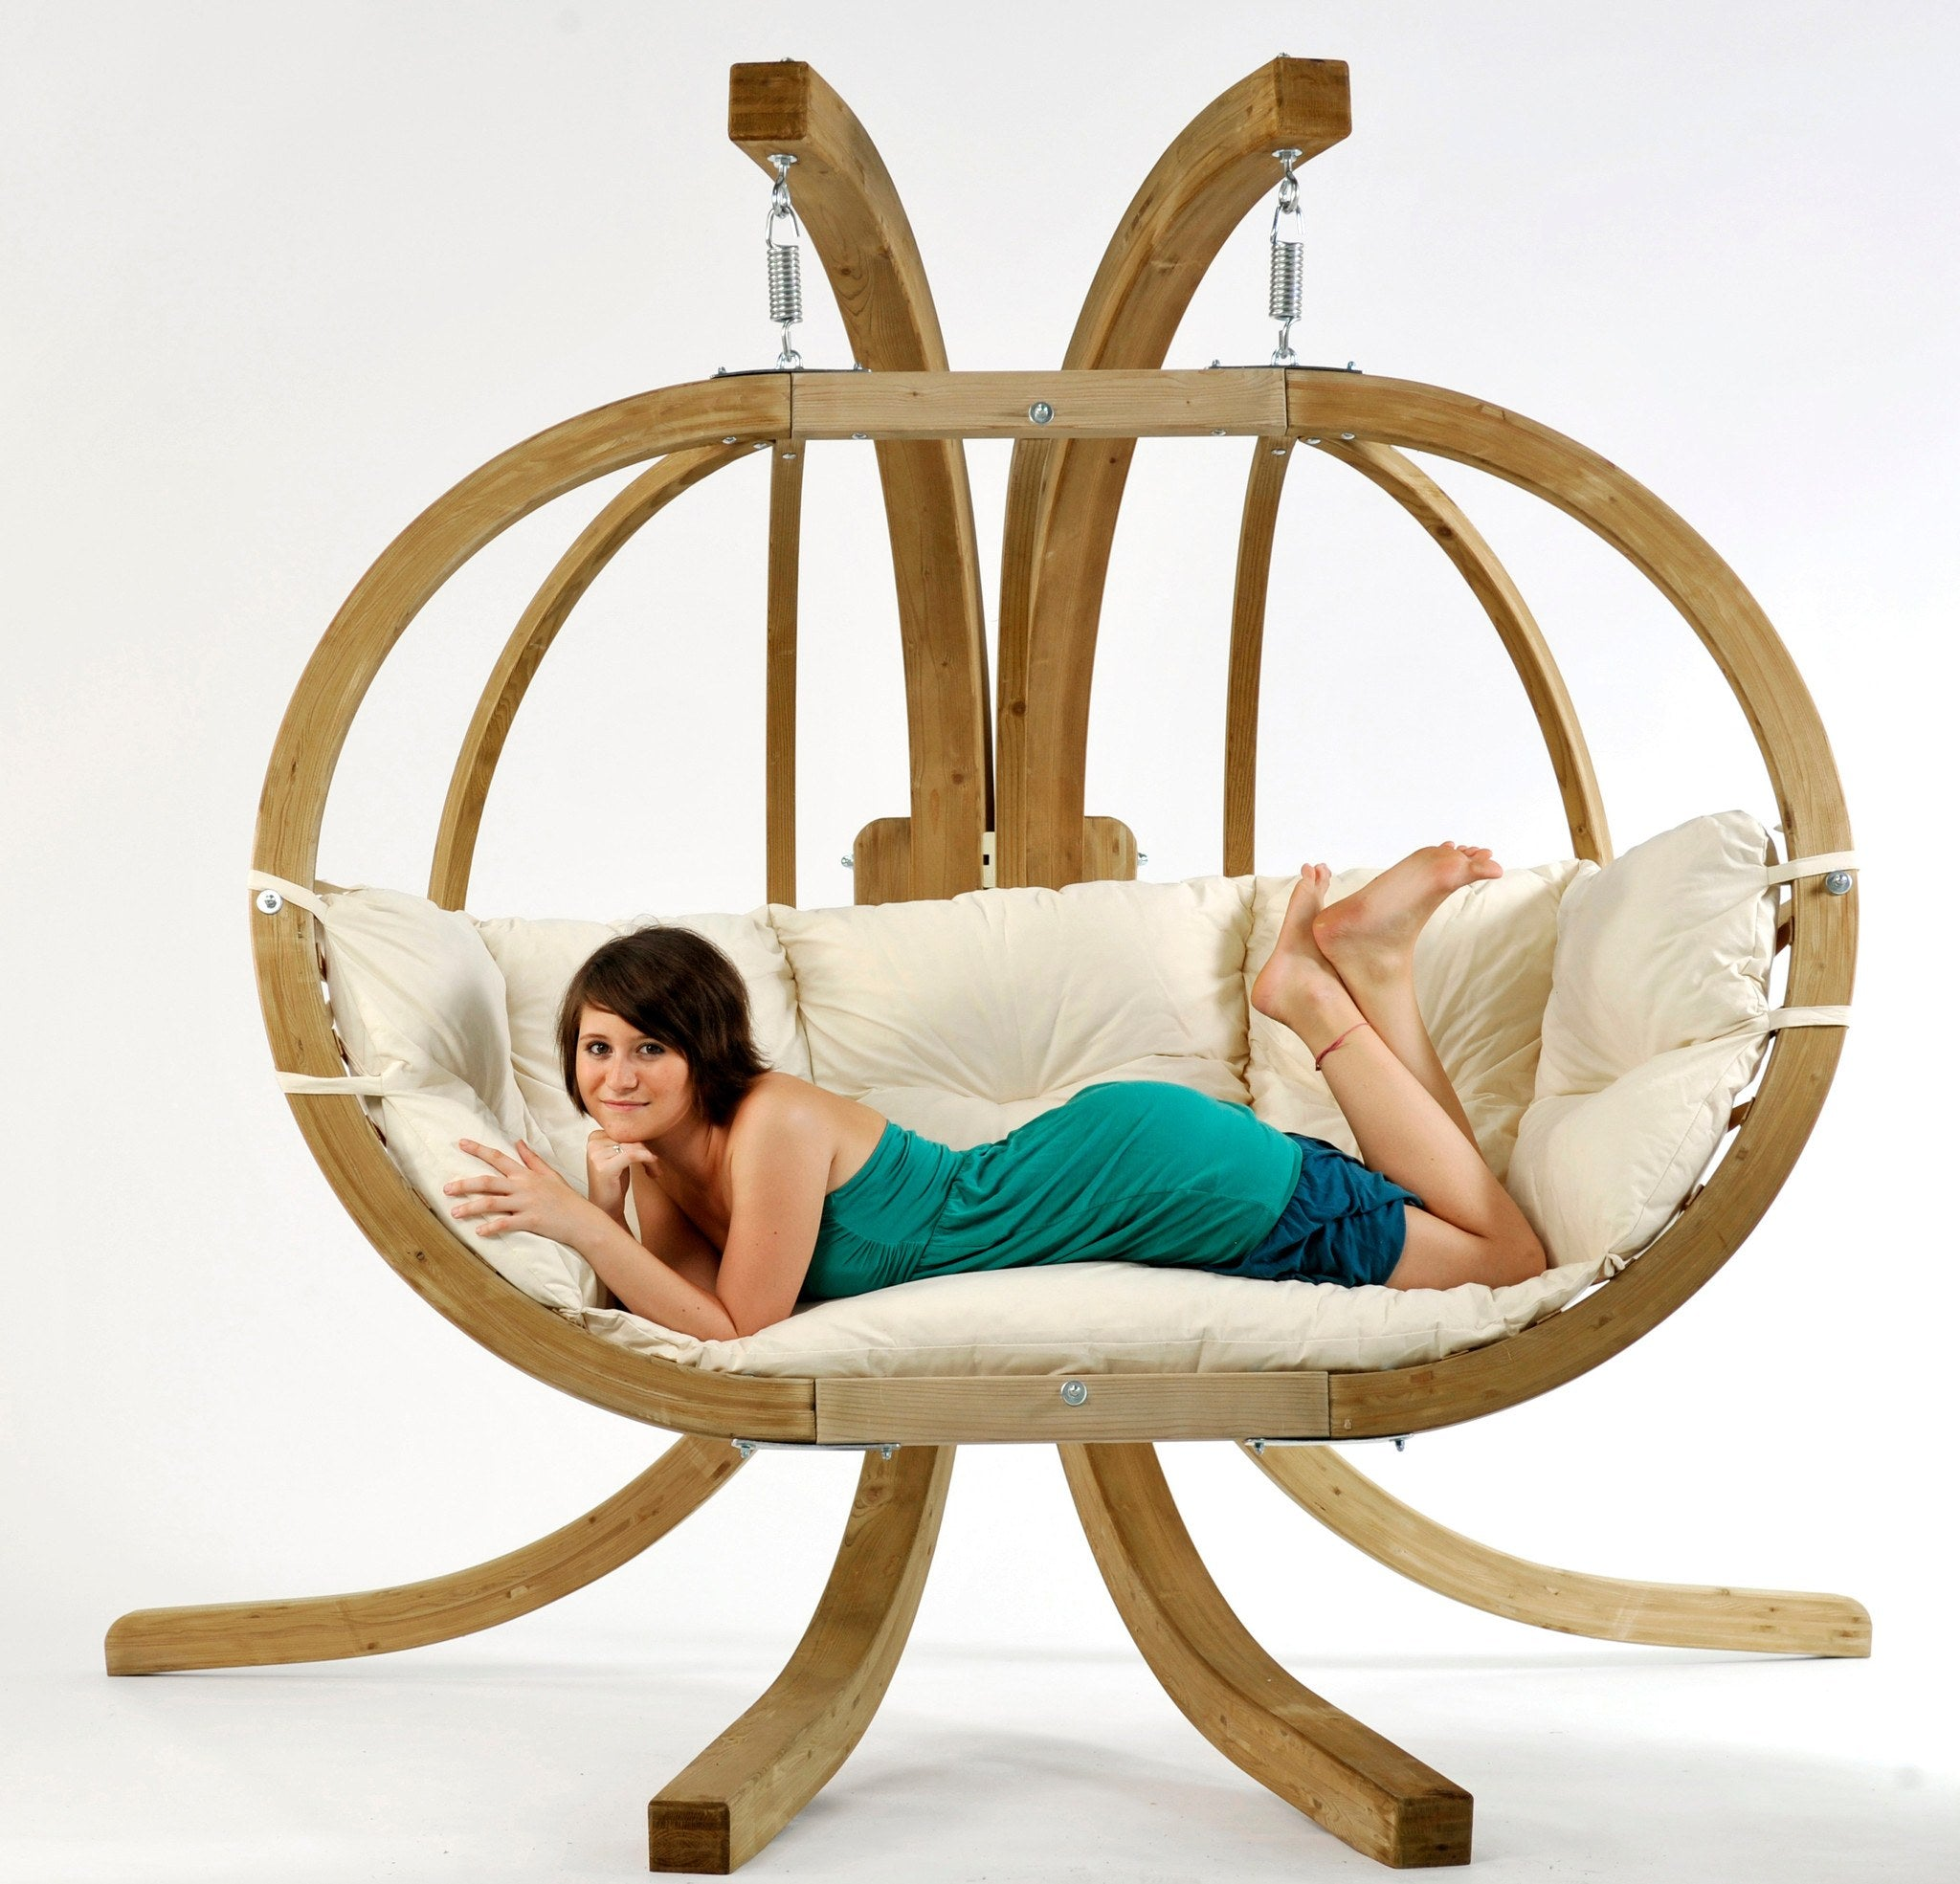 Sensational Byer Of Maine Globo Double Hanging Chair Natural New Alphanode Cool Chair Designs And Ideas Alphanodeonline